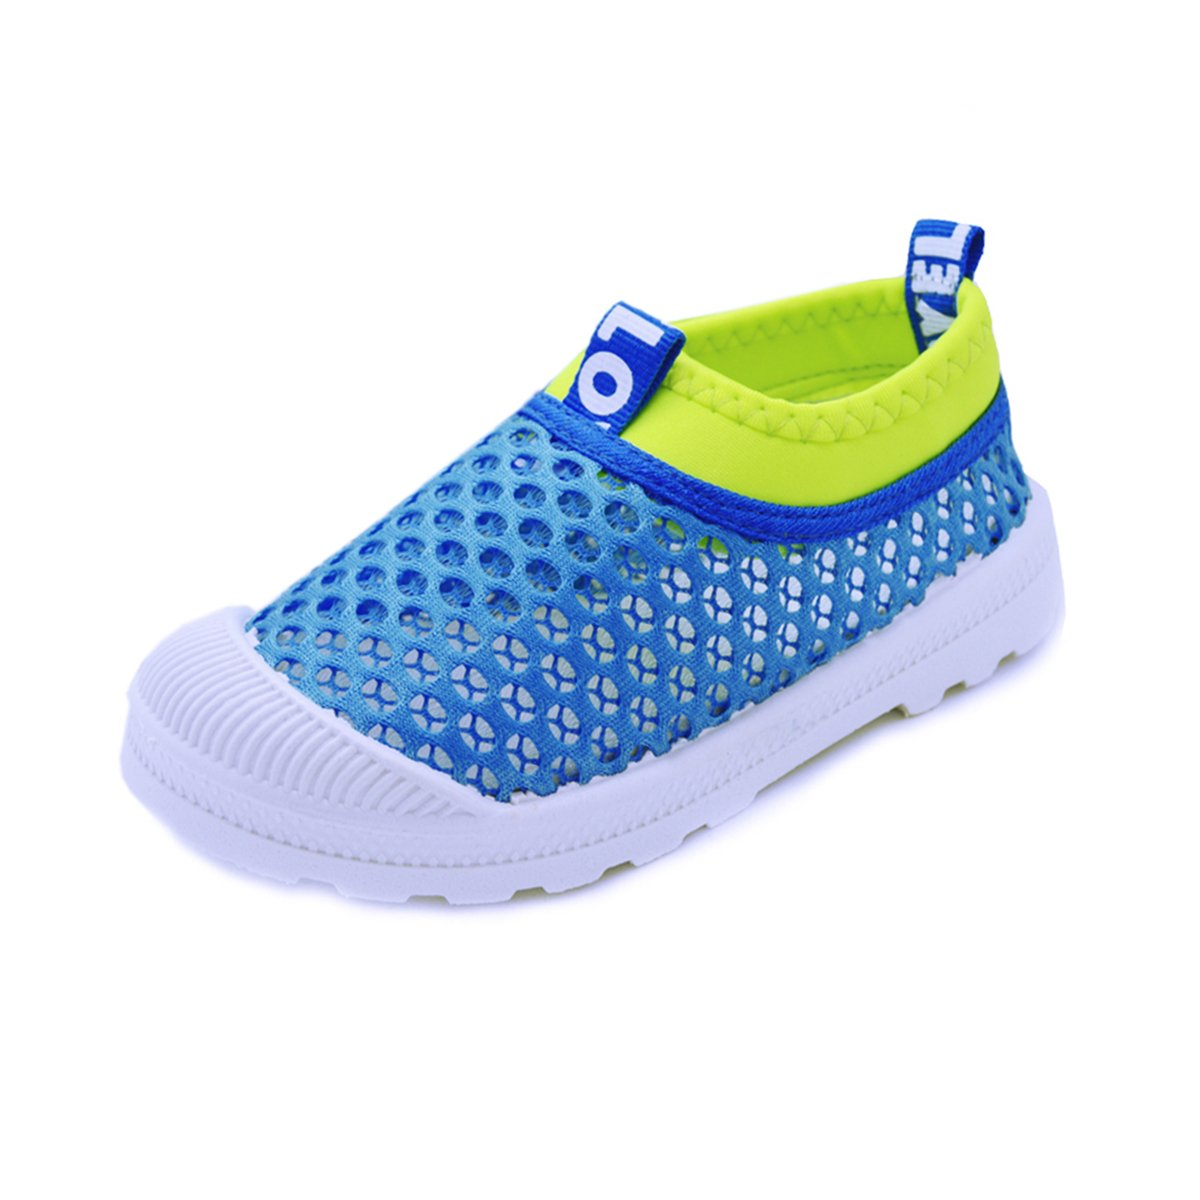 RVROVIC Kids Slip-on Breathable Mesh Sneakers Summer Beach Water Shoes Toddler/Little Kid (7 M US Toddler, 1-Blue)